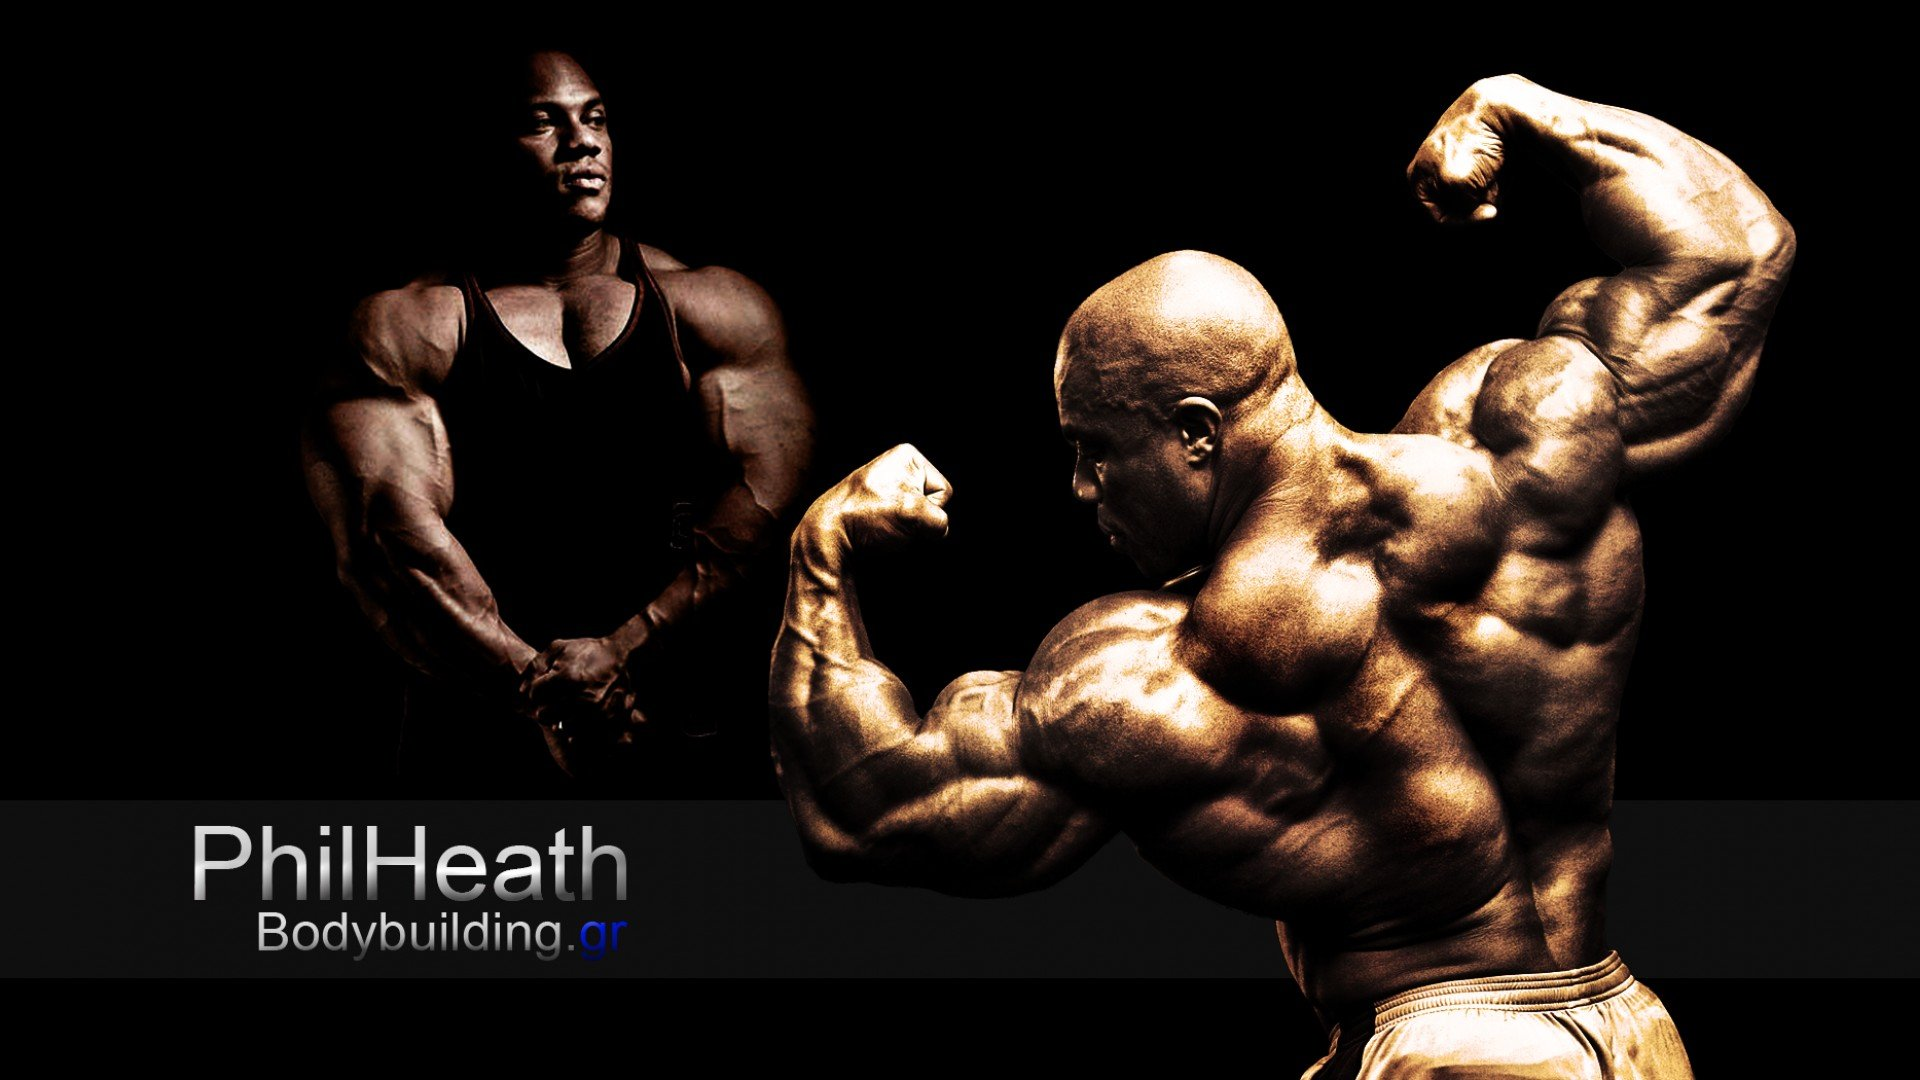 Body Building Fitness Muscle Muscles Weight Lifting Bodybuilding 70 Wallpaper